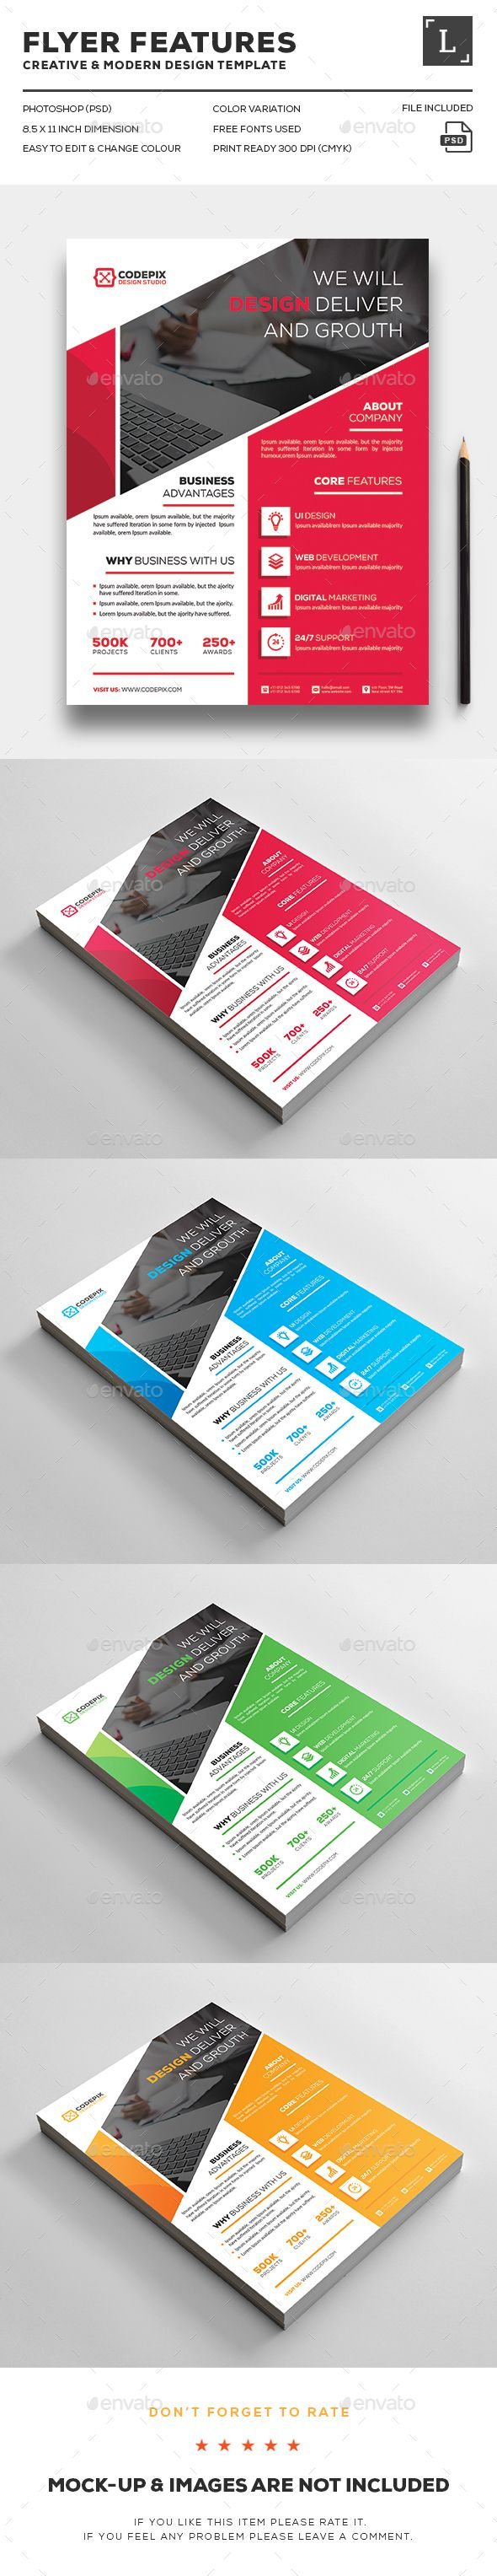 Corporate Flyer Template PSD. Download here: http://graphicriver.net/item/corporate-flyer/16496991?ref=ksioks